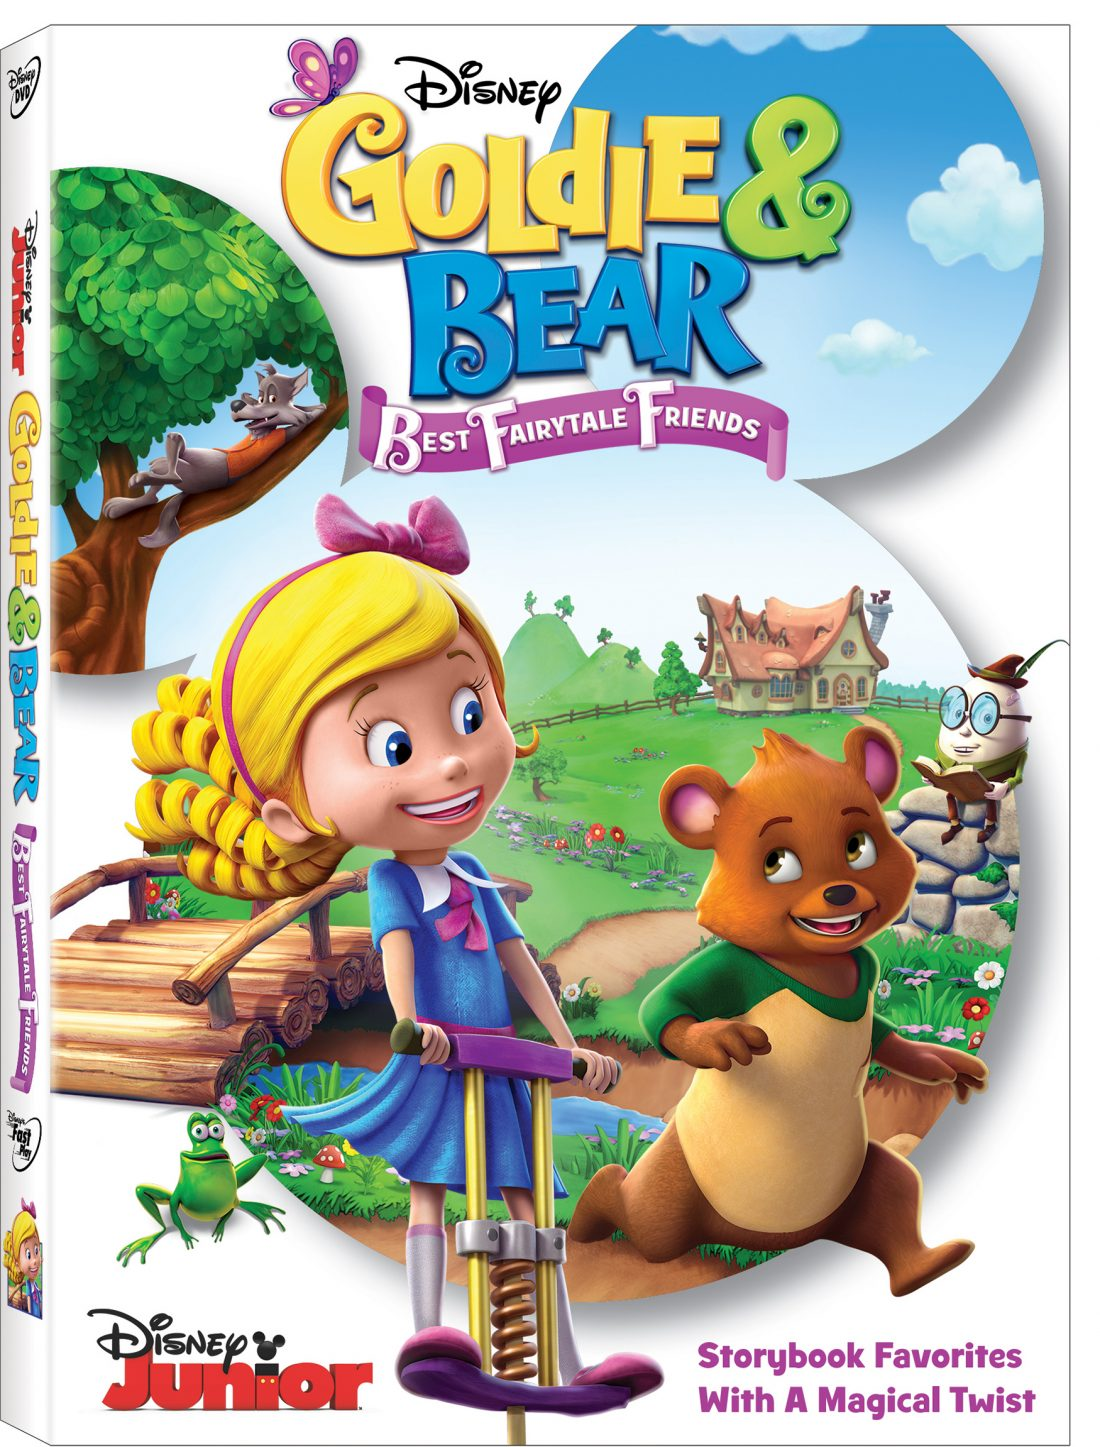 Disney S Golamp Bear Best Fairytale Friends Dvd Story